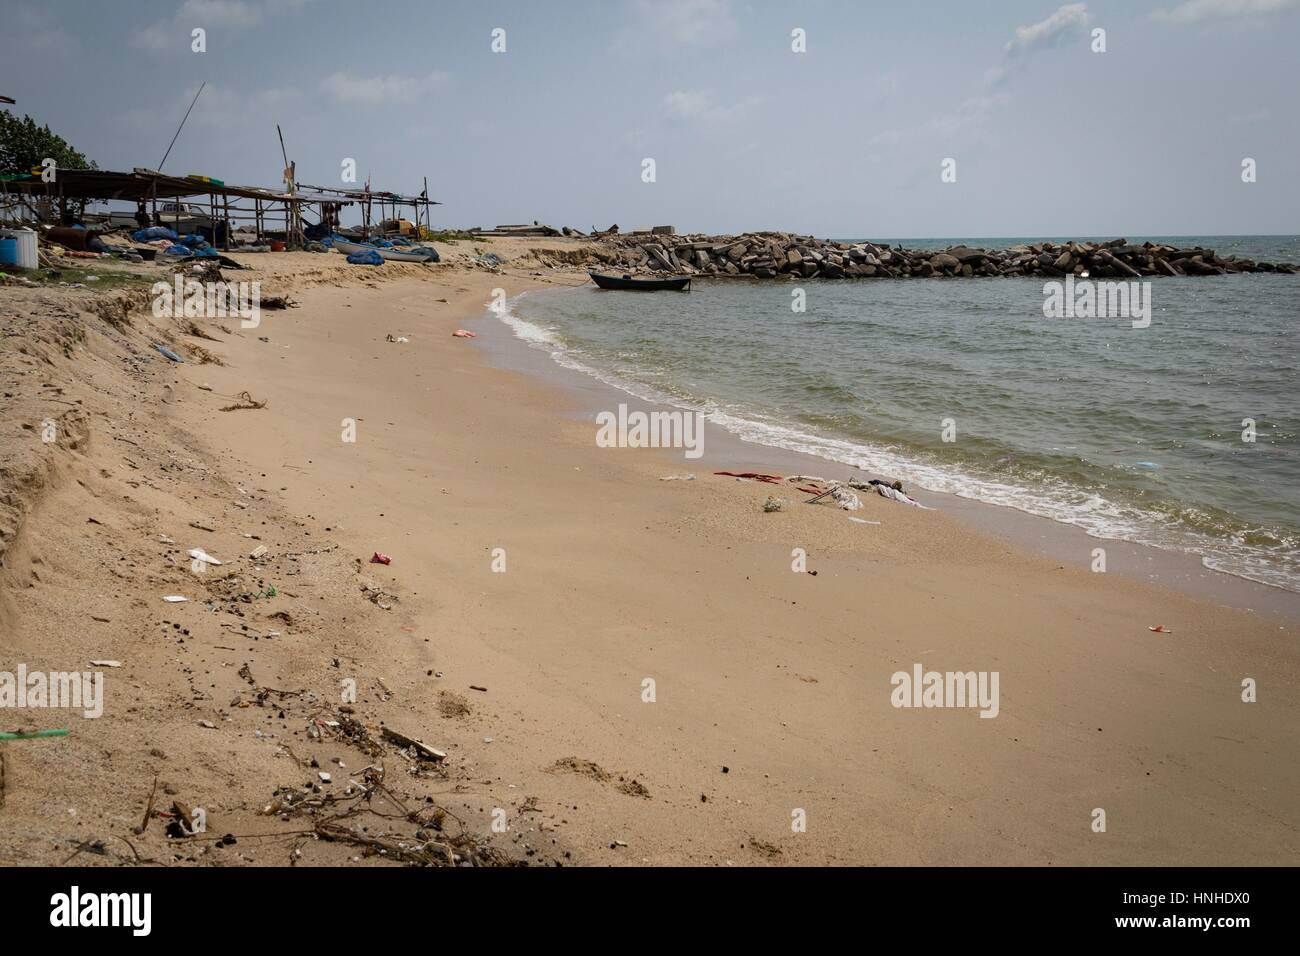 Rayong, Thailand - February 27, 2014 Pollution of the Gulf of Thailand in the area of Rayong Terminal. - Stock Image